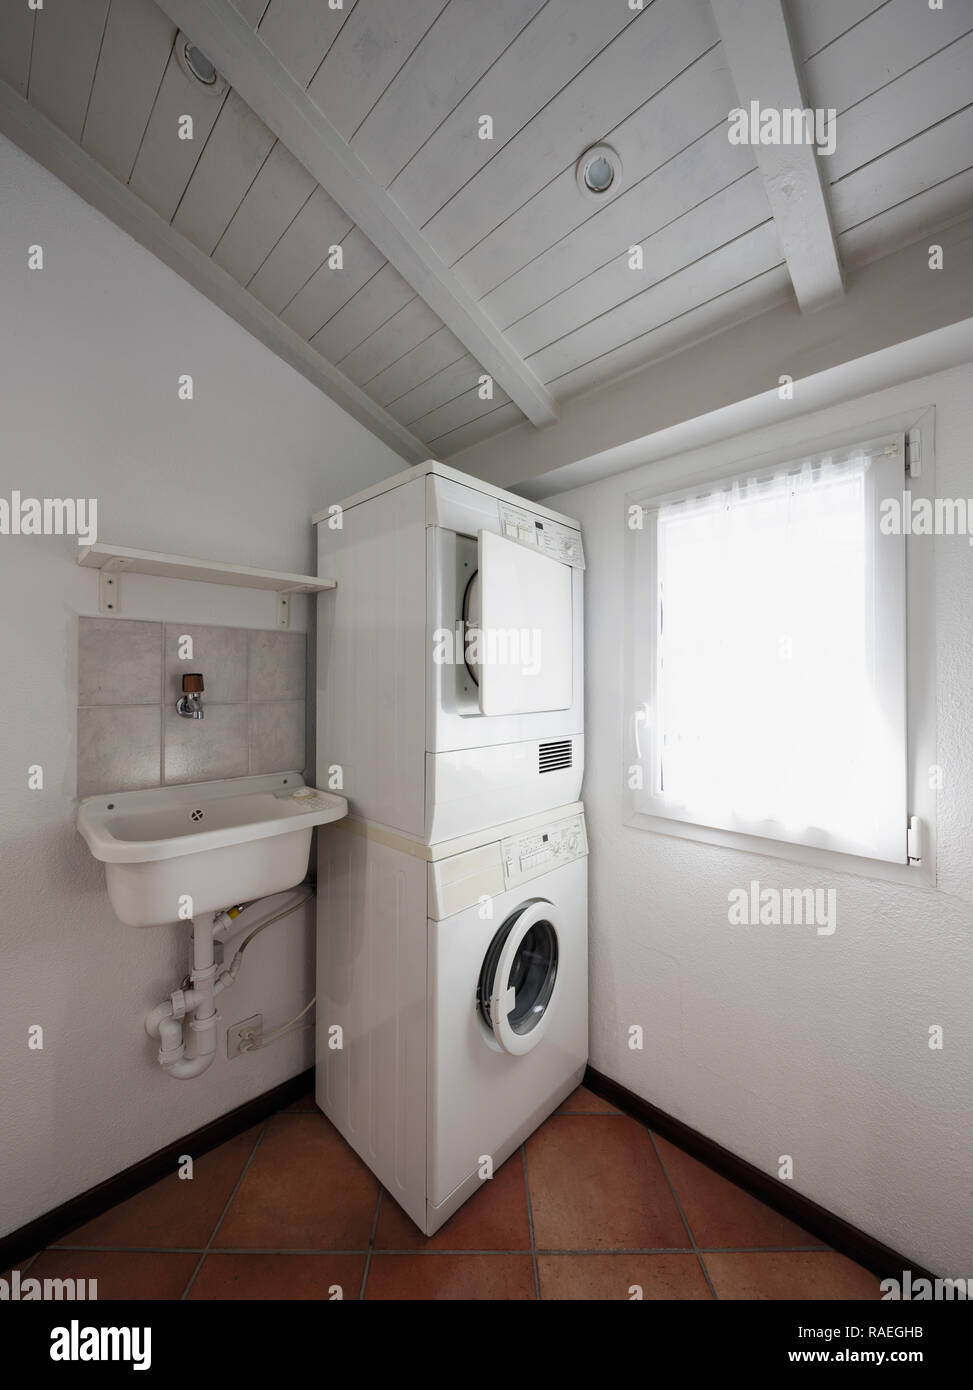 Laundry With Washer And Dryer Stacked On Top Of Each Other Stock